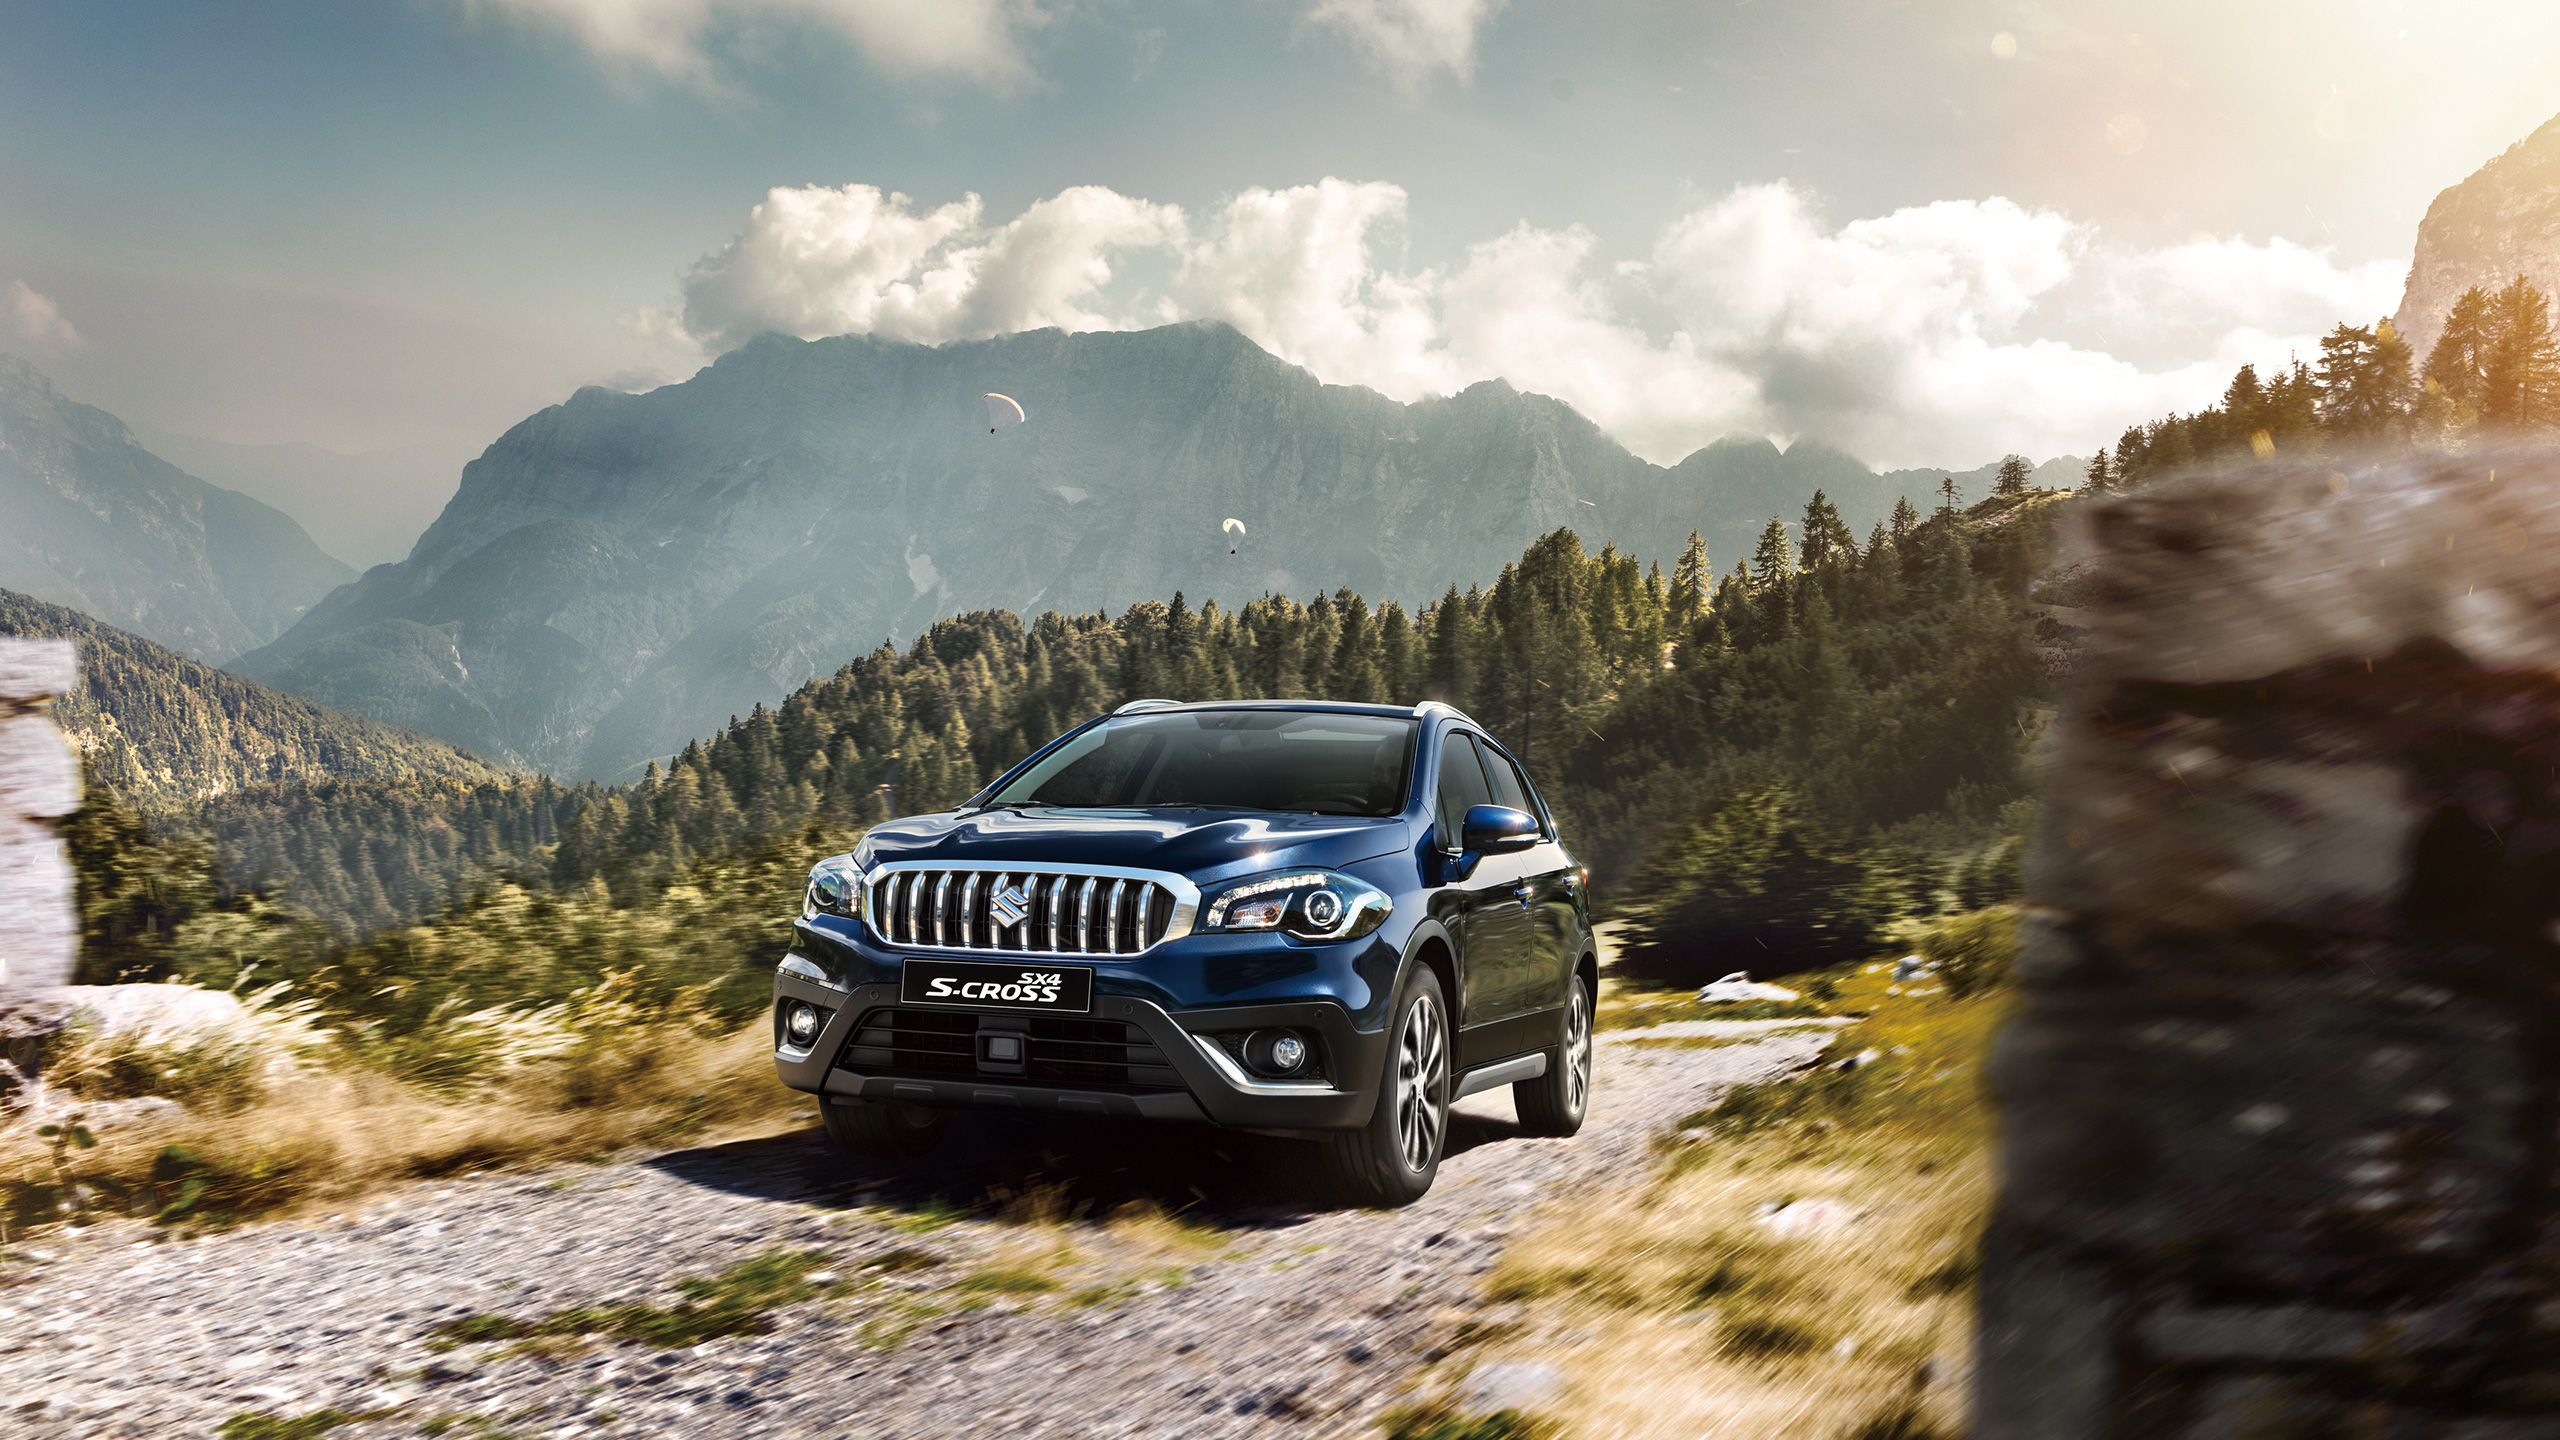 front-view-of- SX4-S-CROSS-driving-on-rough-road-in-mountain